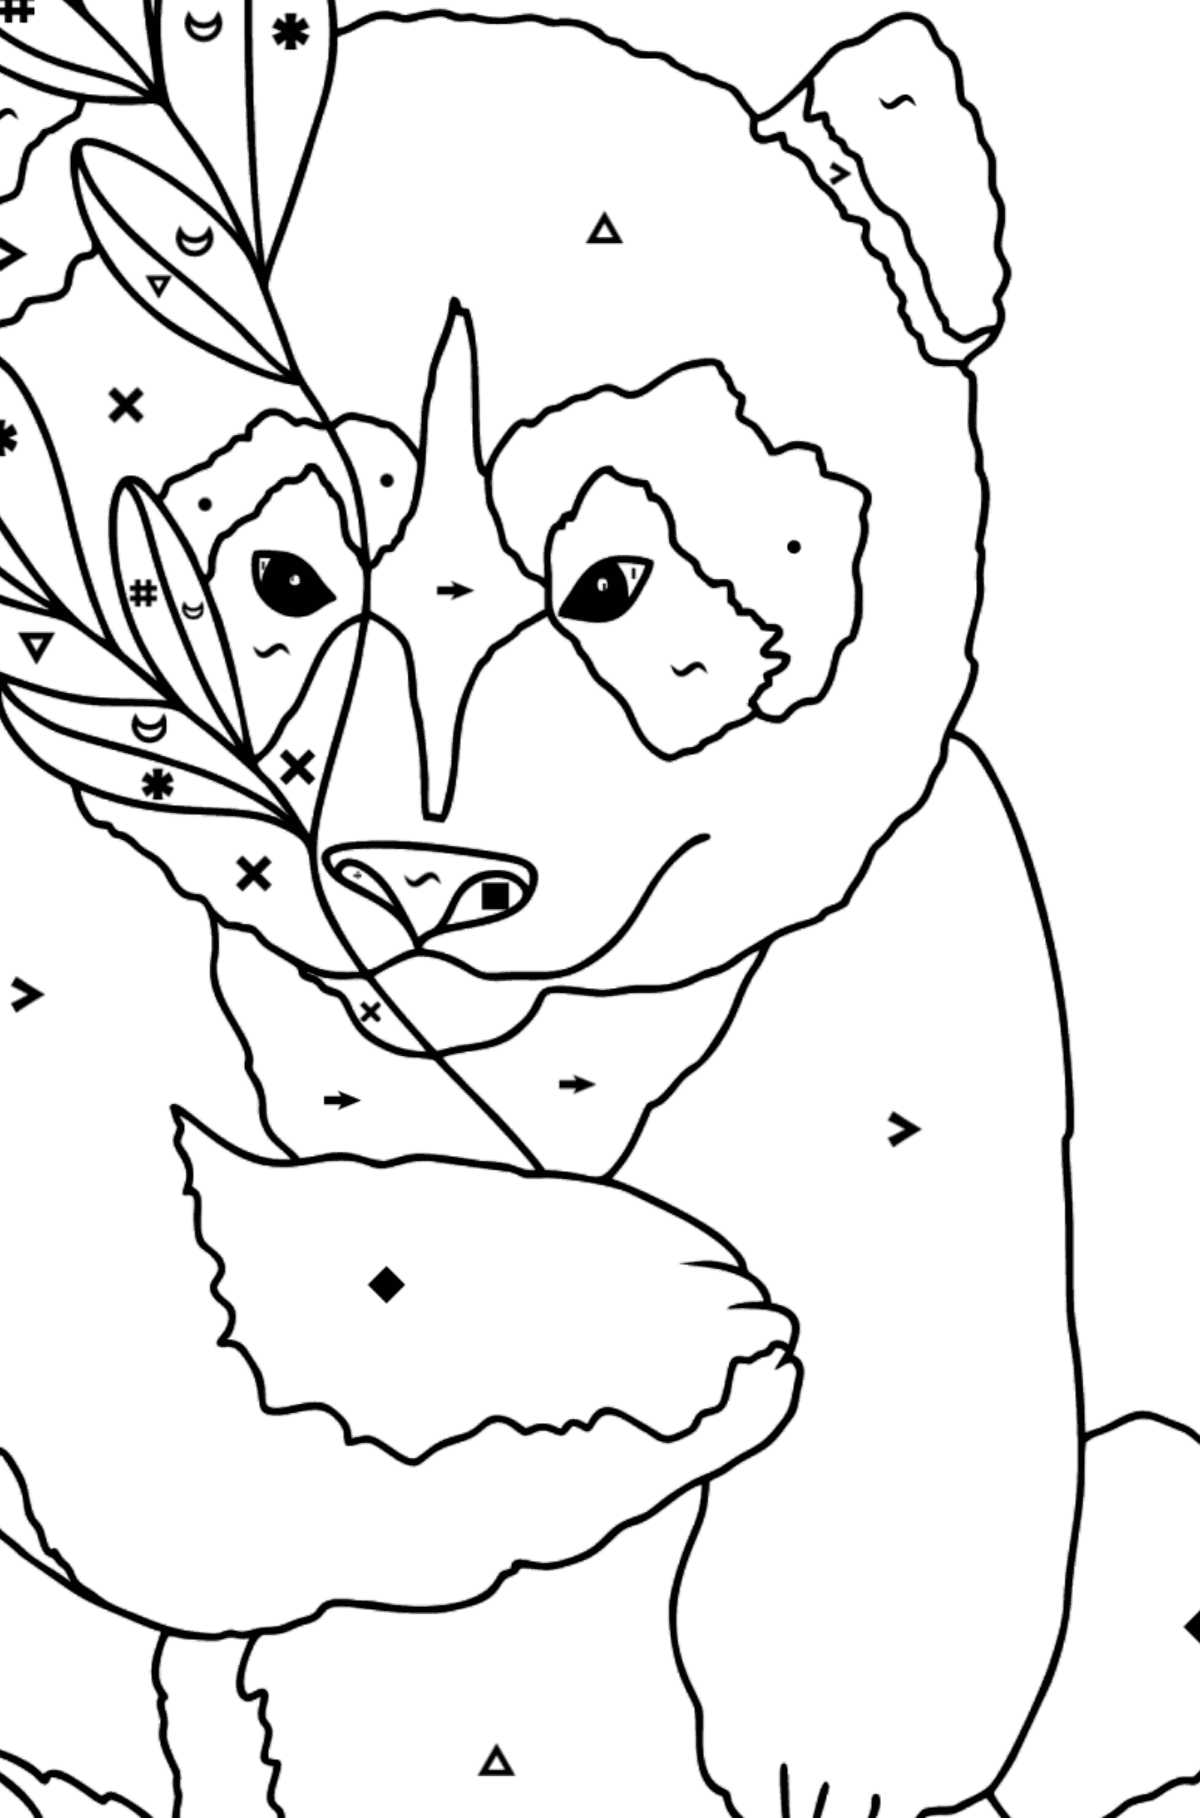 Coloring Page - A Panda Loves Bamboo Leaves - Coloring by Symbols for Kids